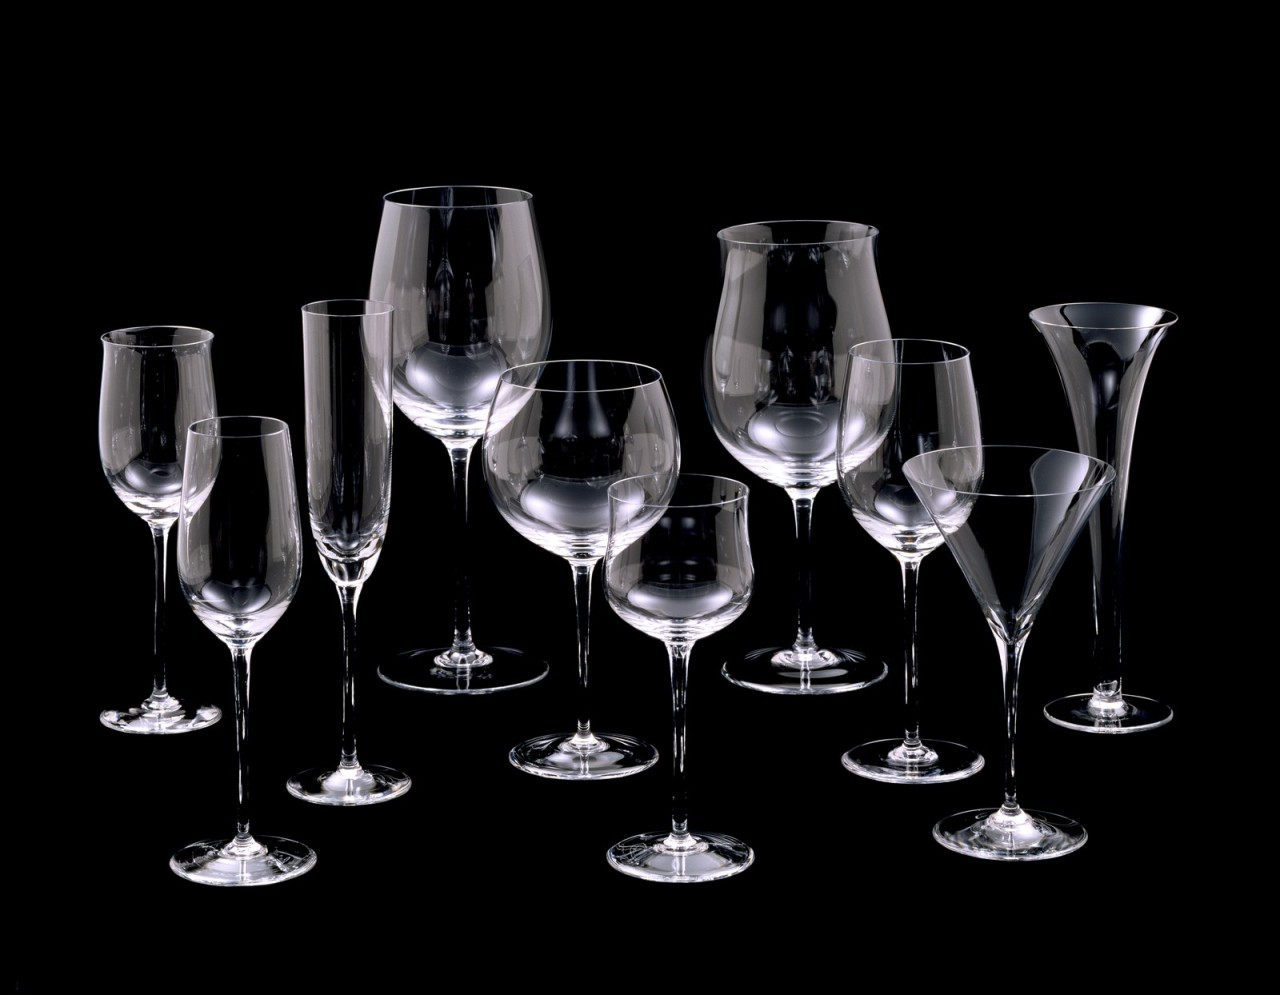 Riedel Glas Corning Museum Of Glass 15 Goblets Claus Josef Riedel For